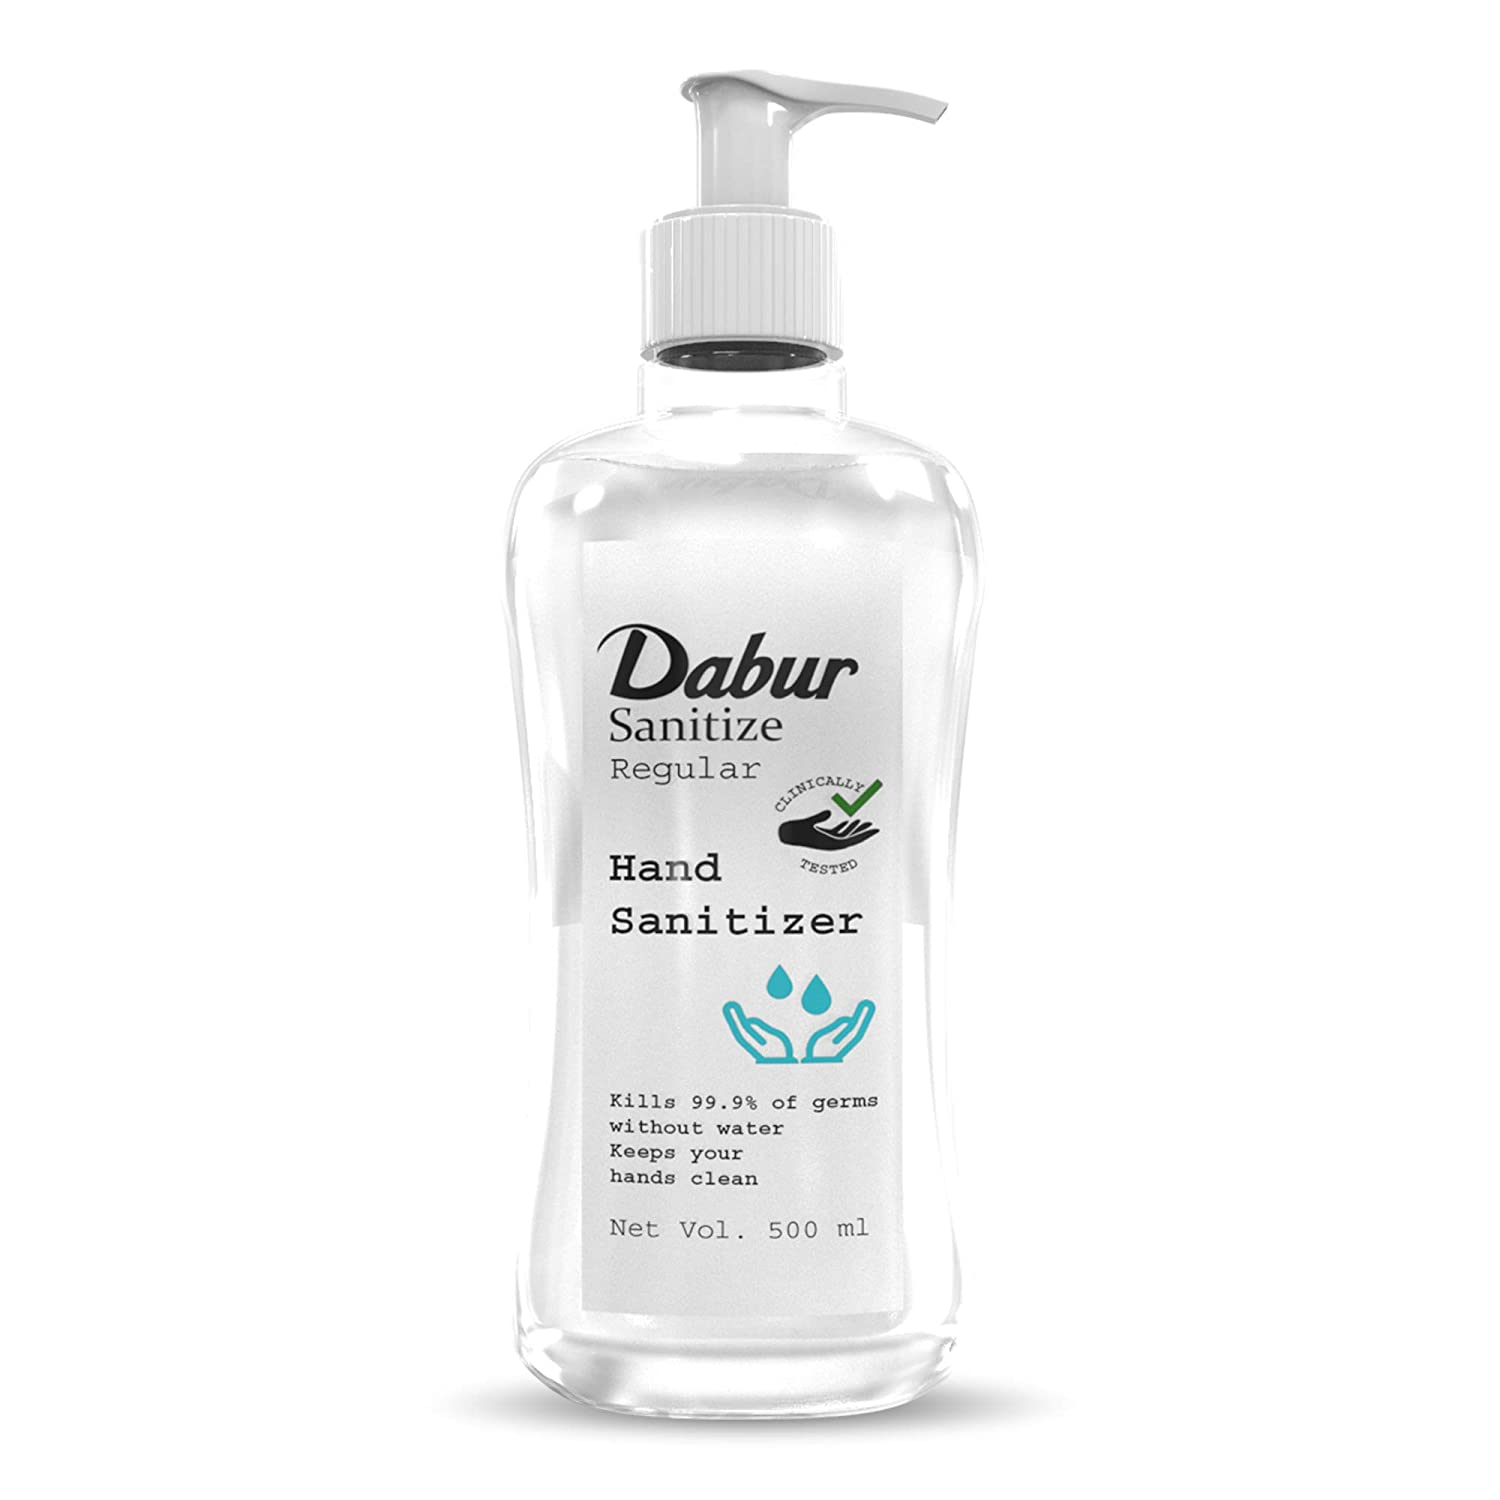 10 Best Hand Sanitizers in India - 2020 Reviews & Buyer's Guide